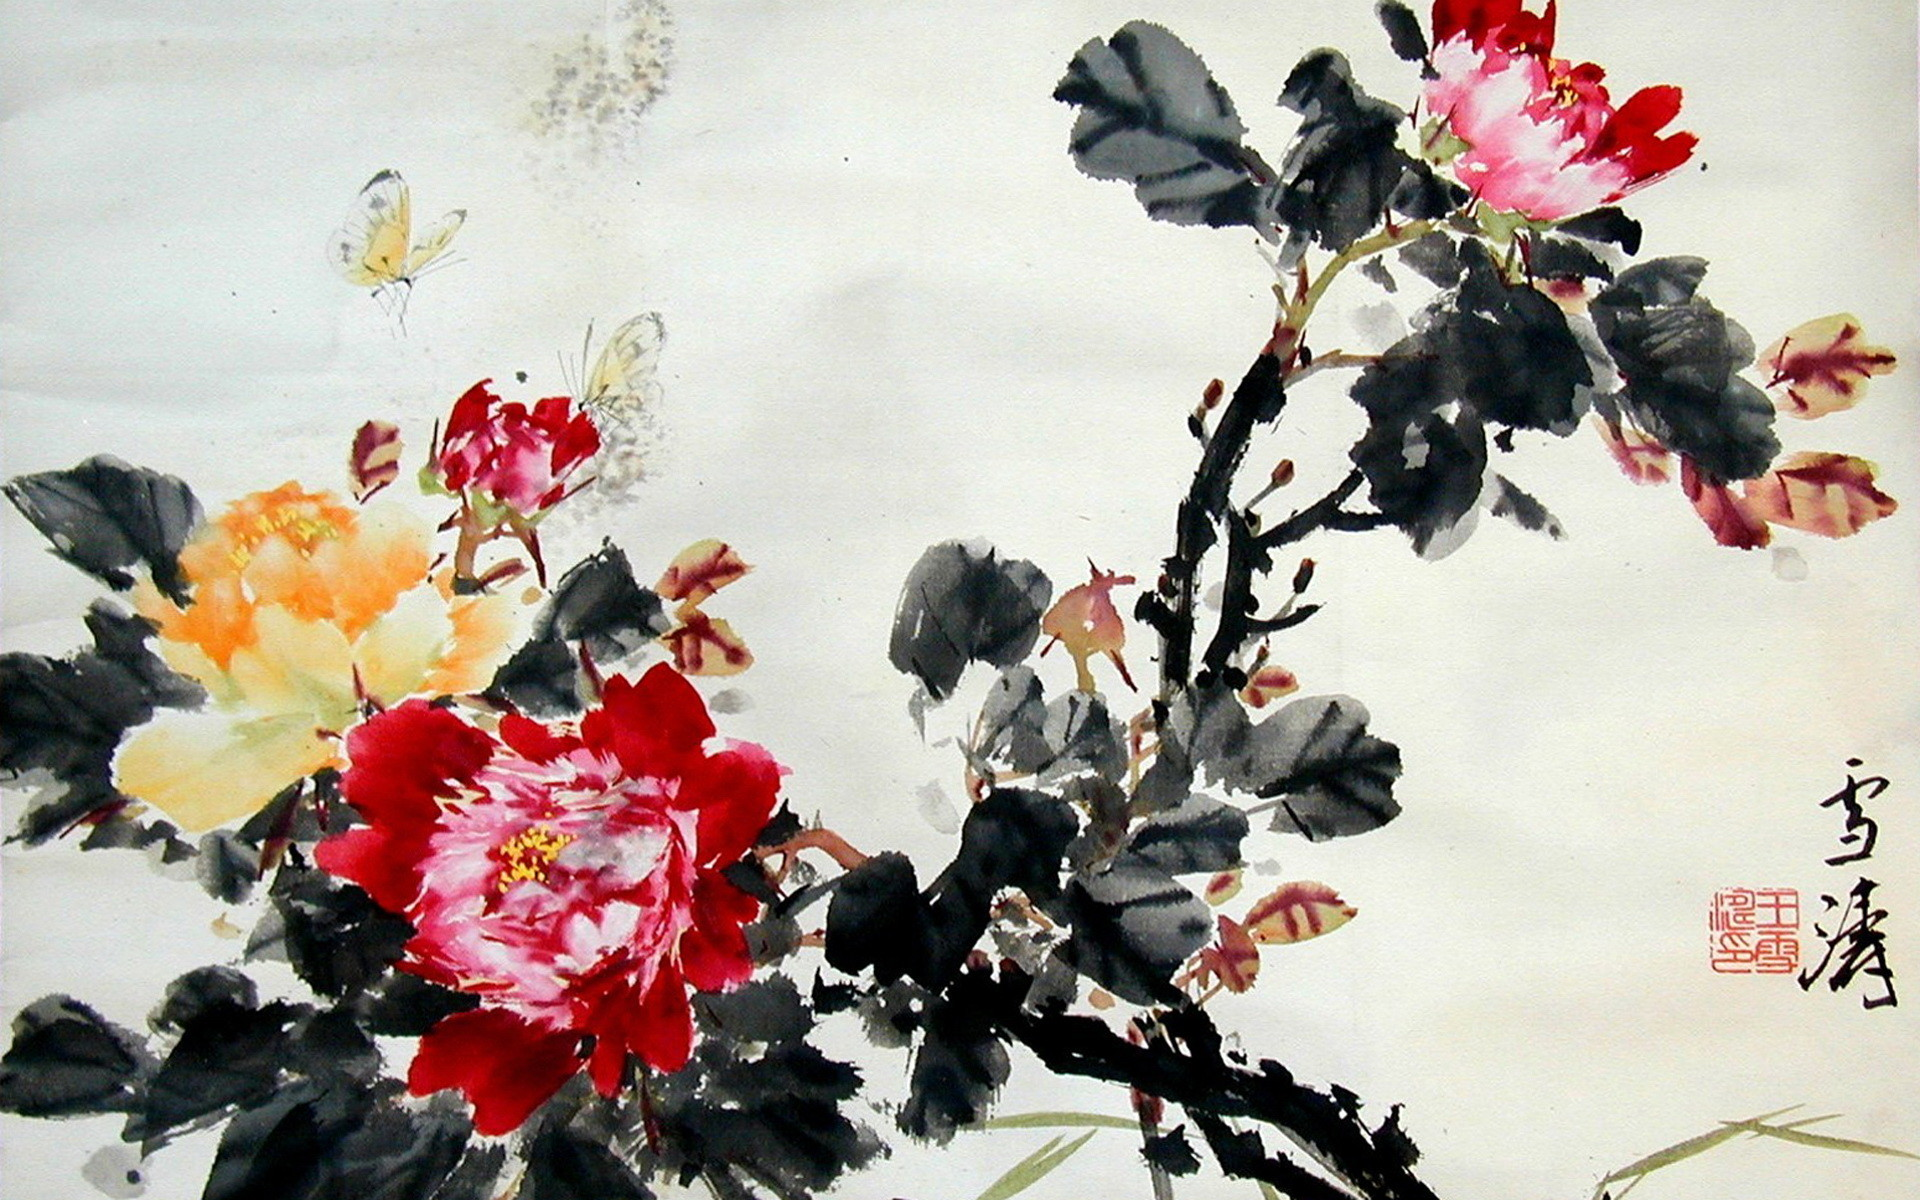 Res: 1920x1200, Images of Chinese Artwork |